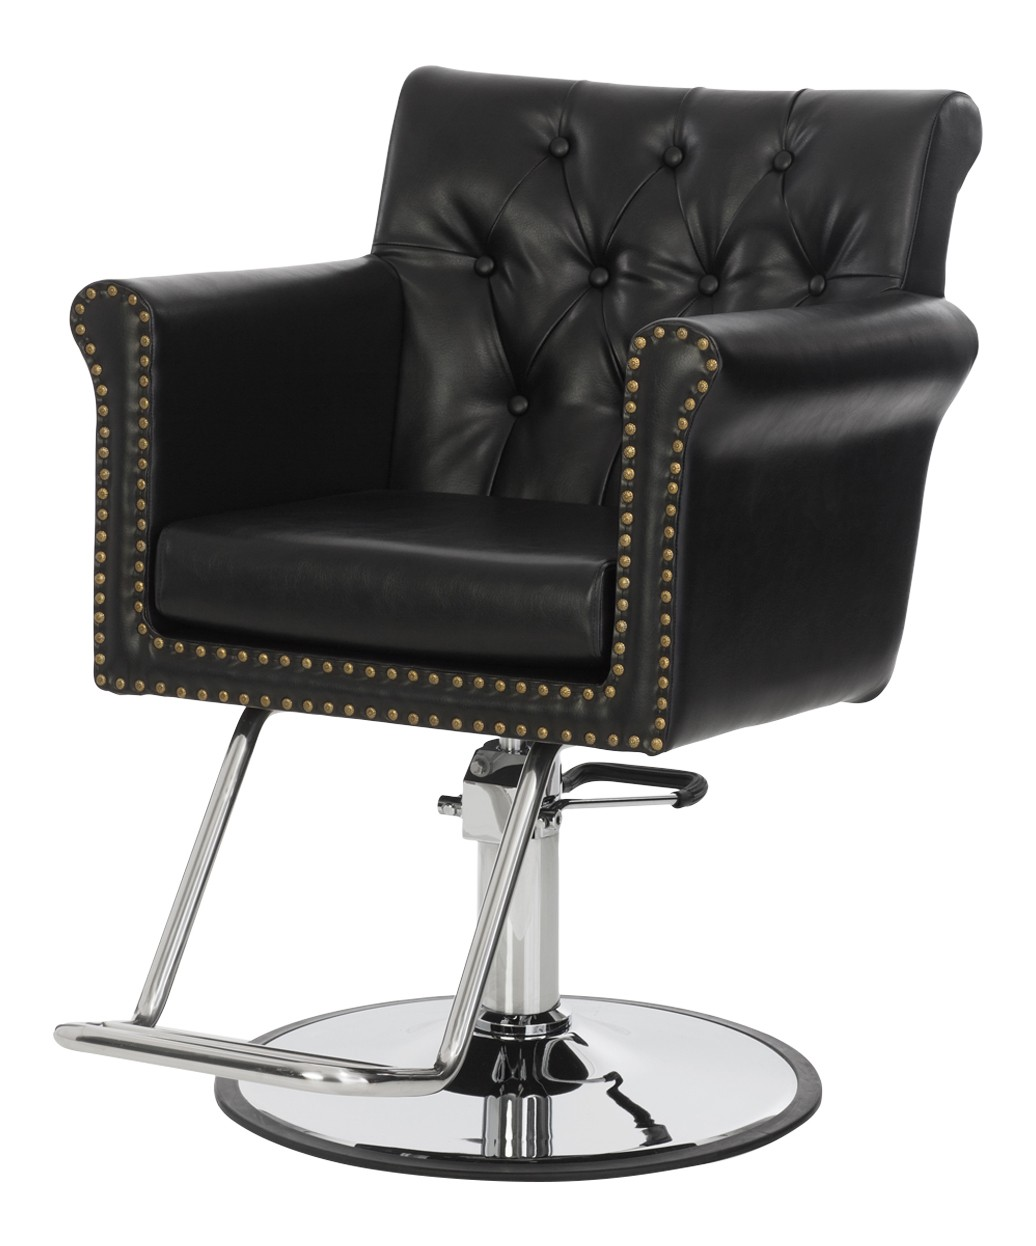 Cheap Makeup Chairs Chelsea Styling Chair